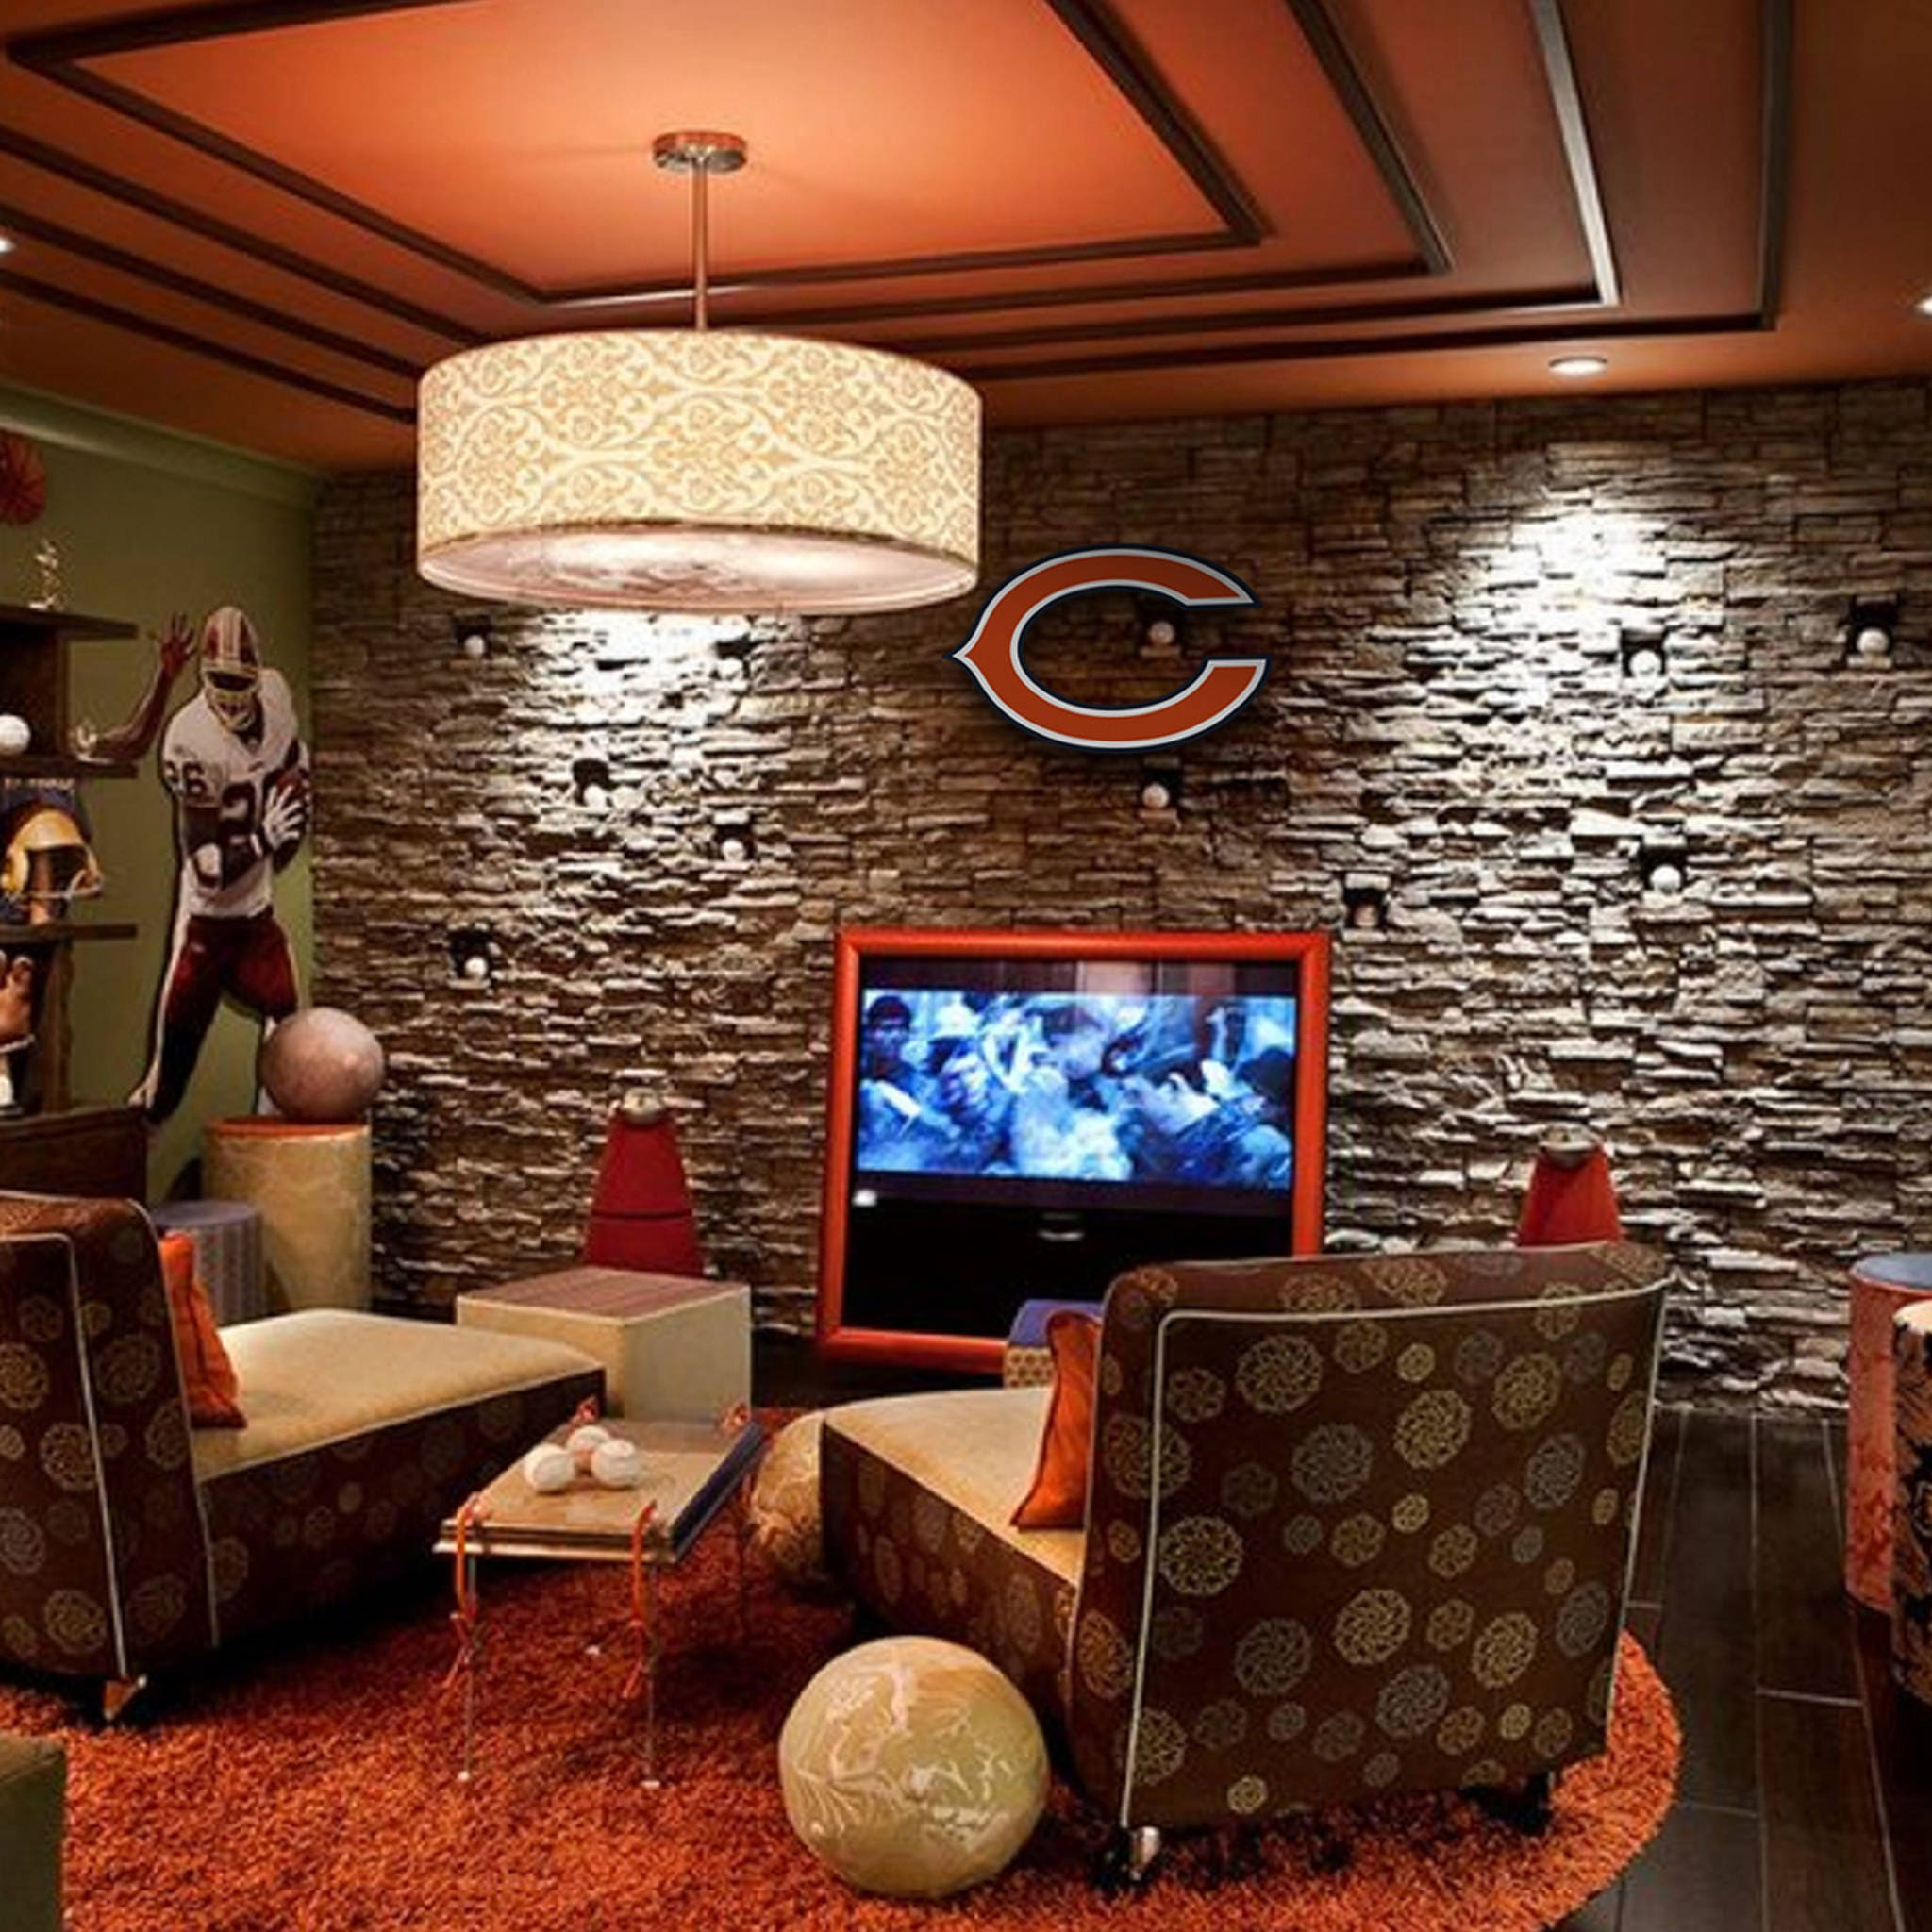 Chicago Bears Decor Wall Boy Room Football